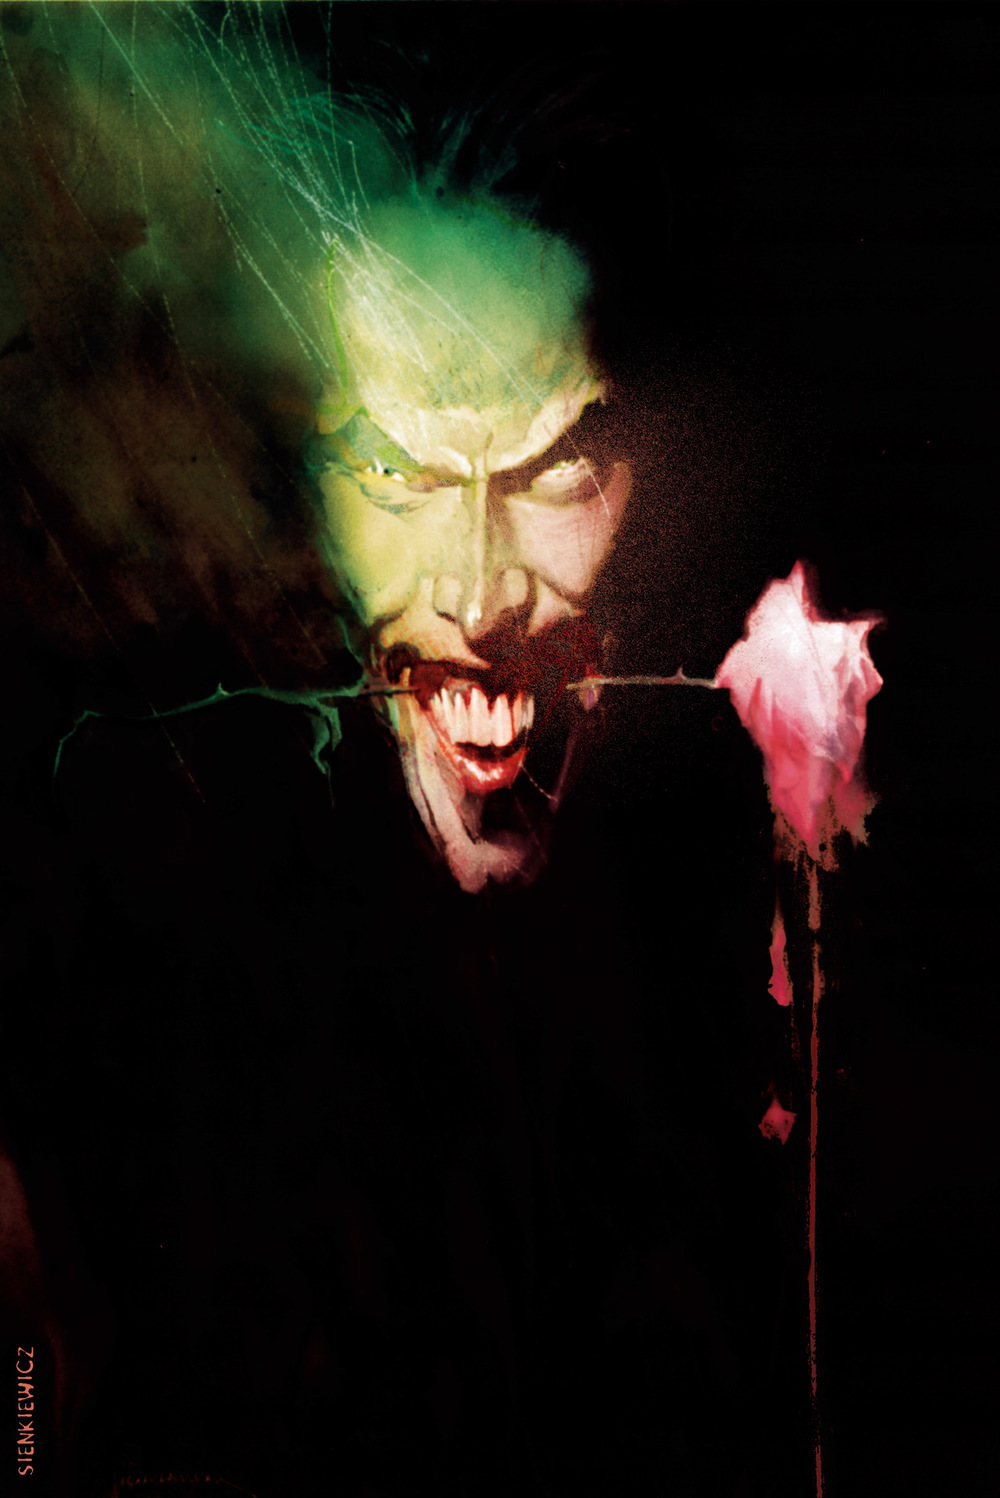 The Joker by Bill Sienkiewicz